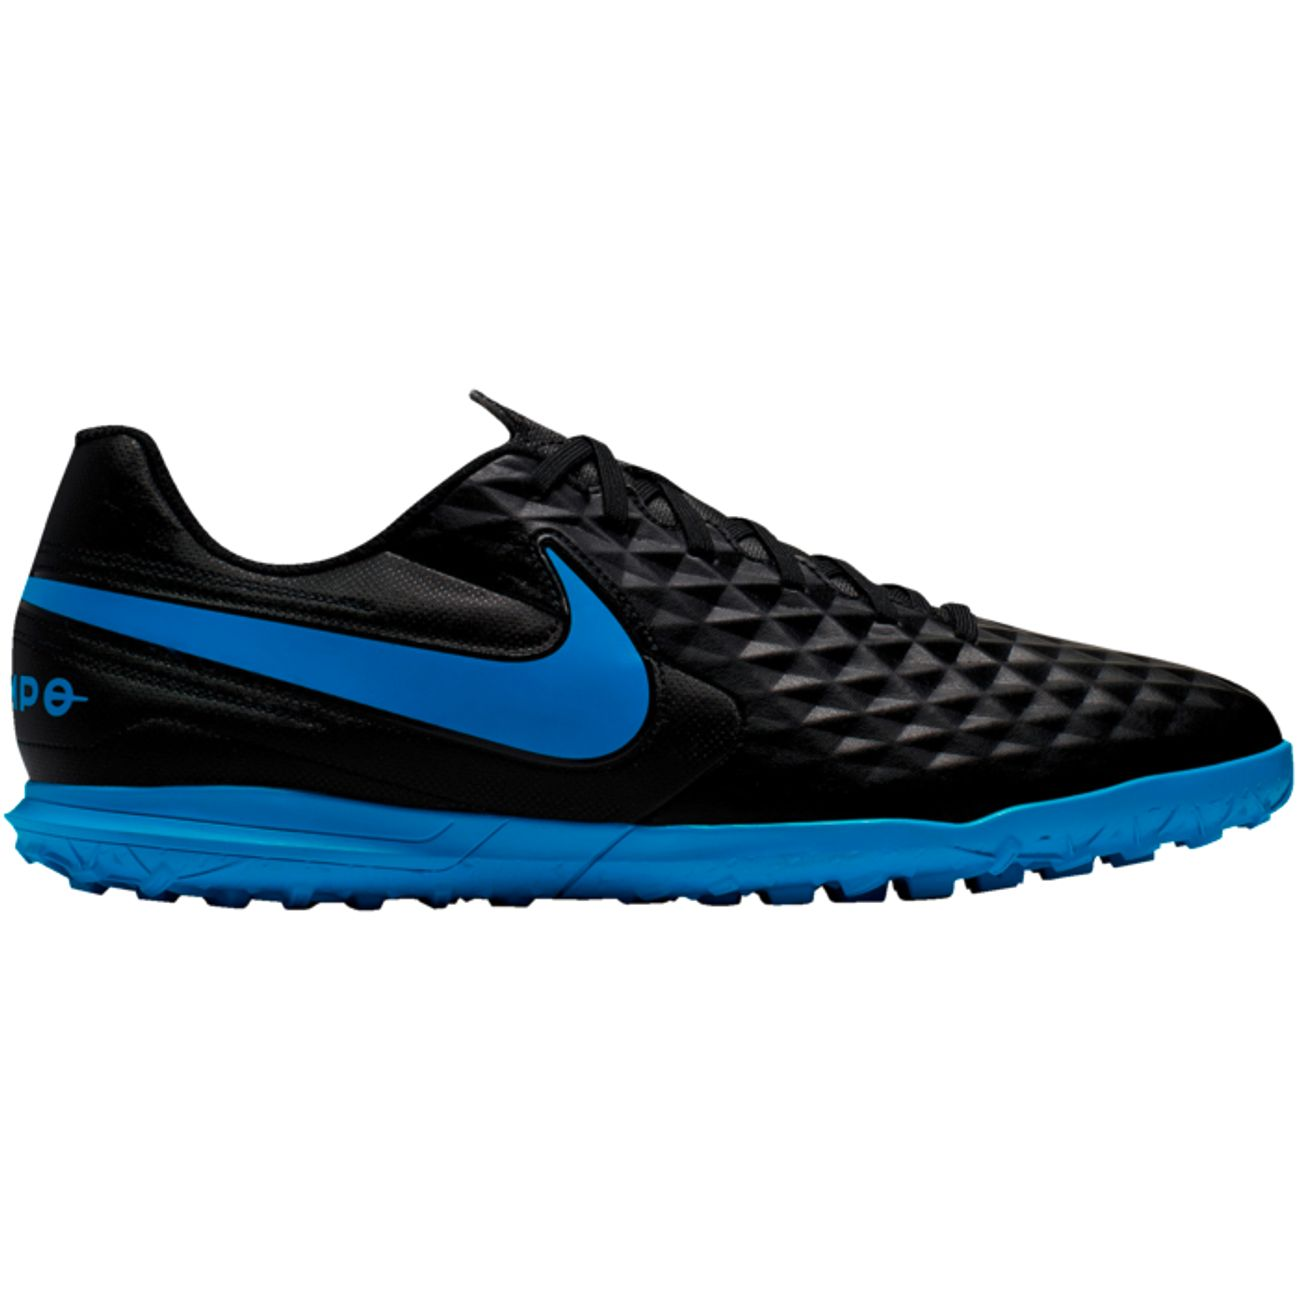 CHAUSSURES BASSES Football adulte NIKE LEGEND 8 CLUB TF